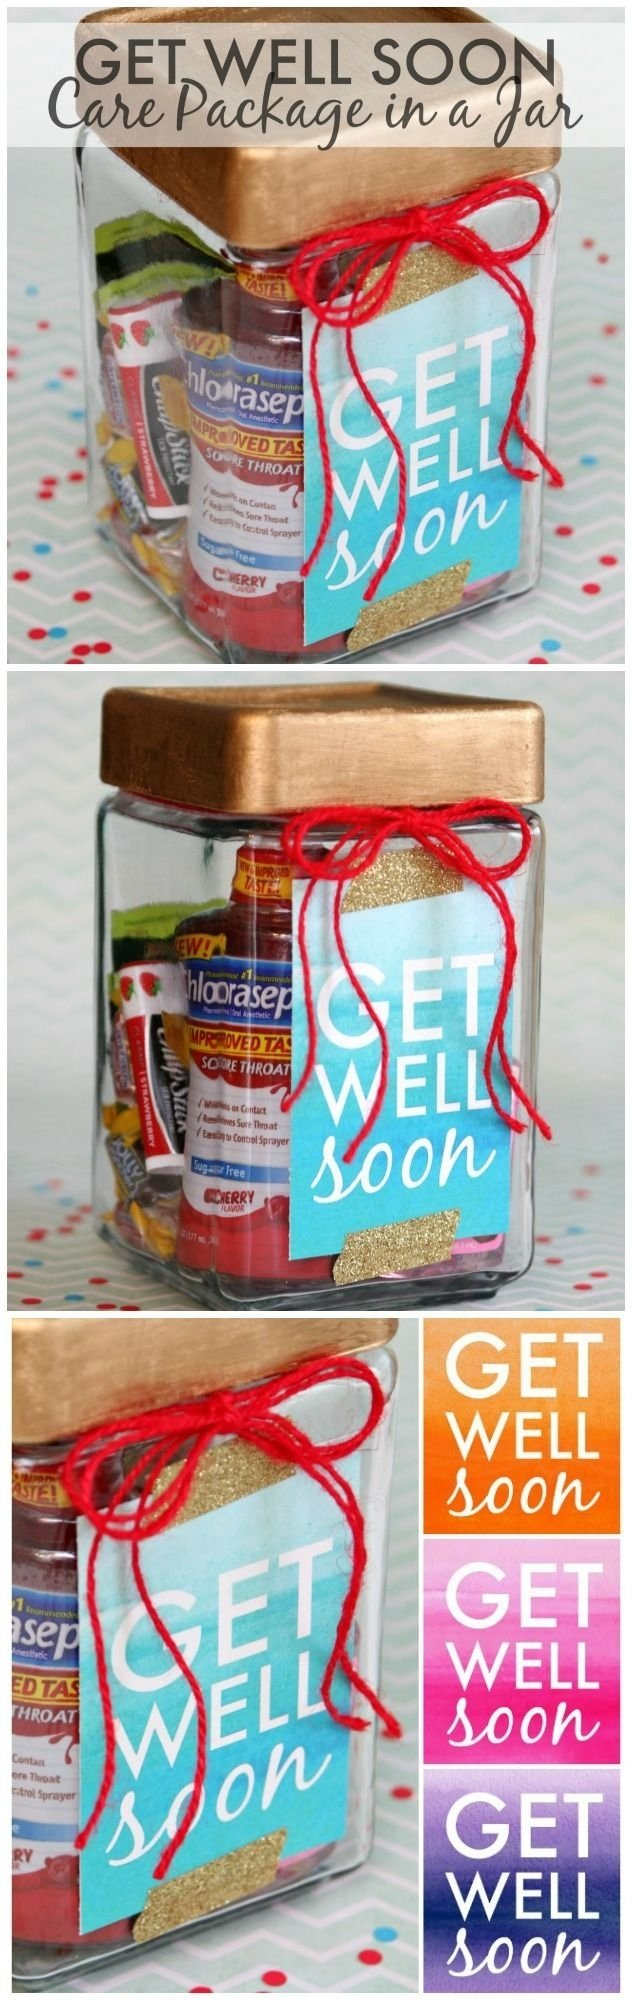 10 Attractive Get Well Soon Care Package Ideas 37 best get well gift ideas images on pinterest gift baskets hand 2020